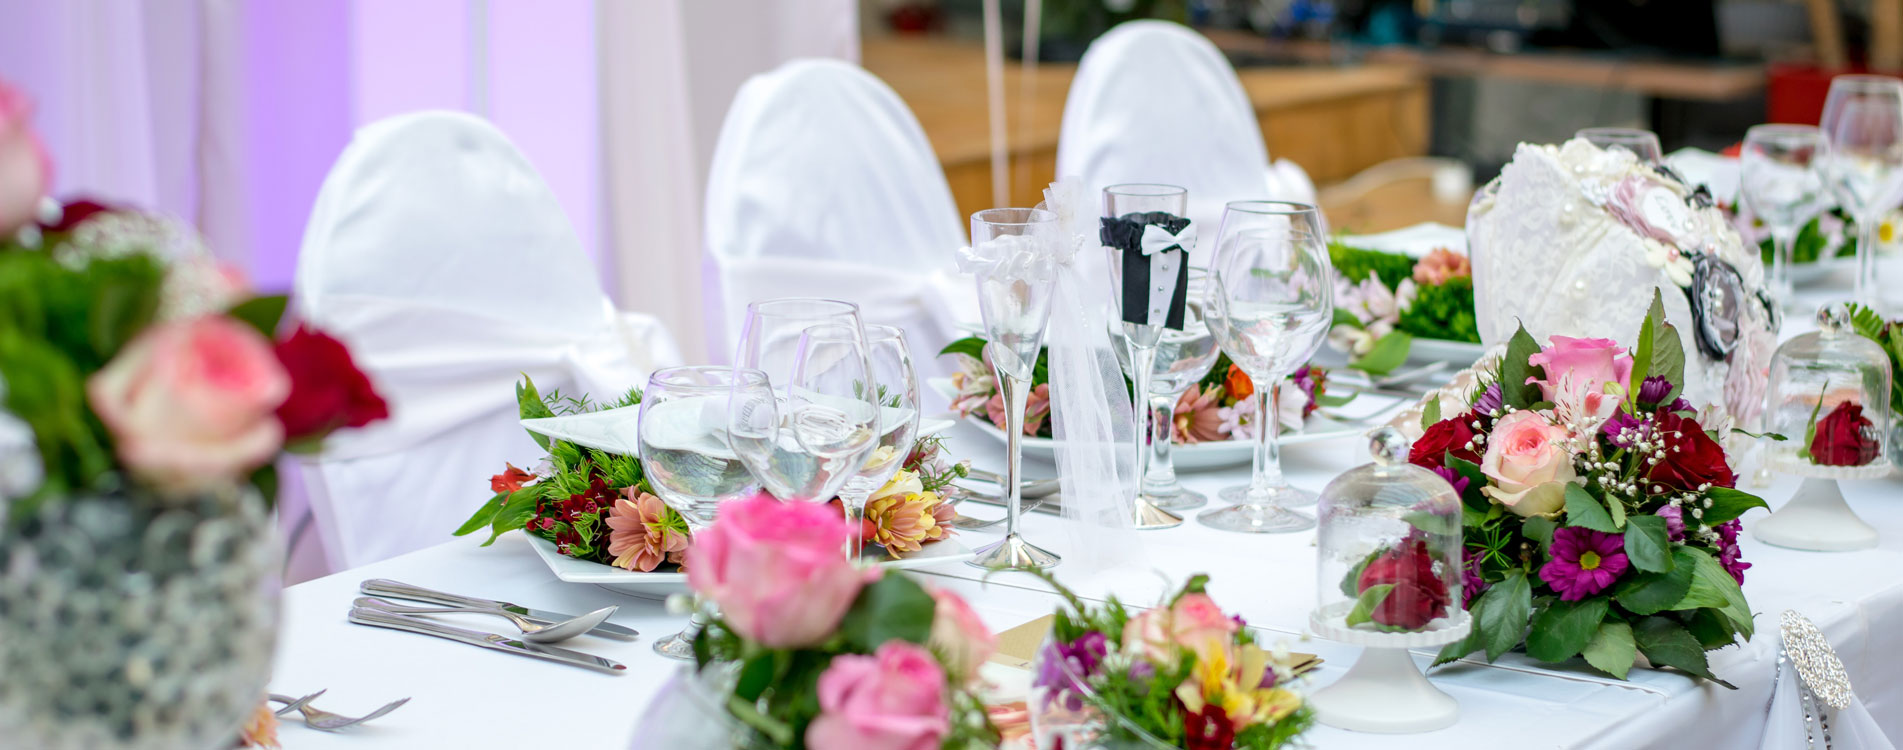 catering-decoration-dinner